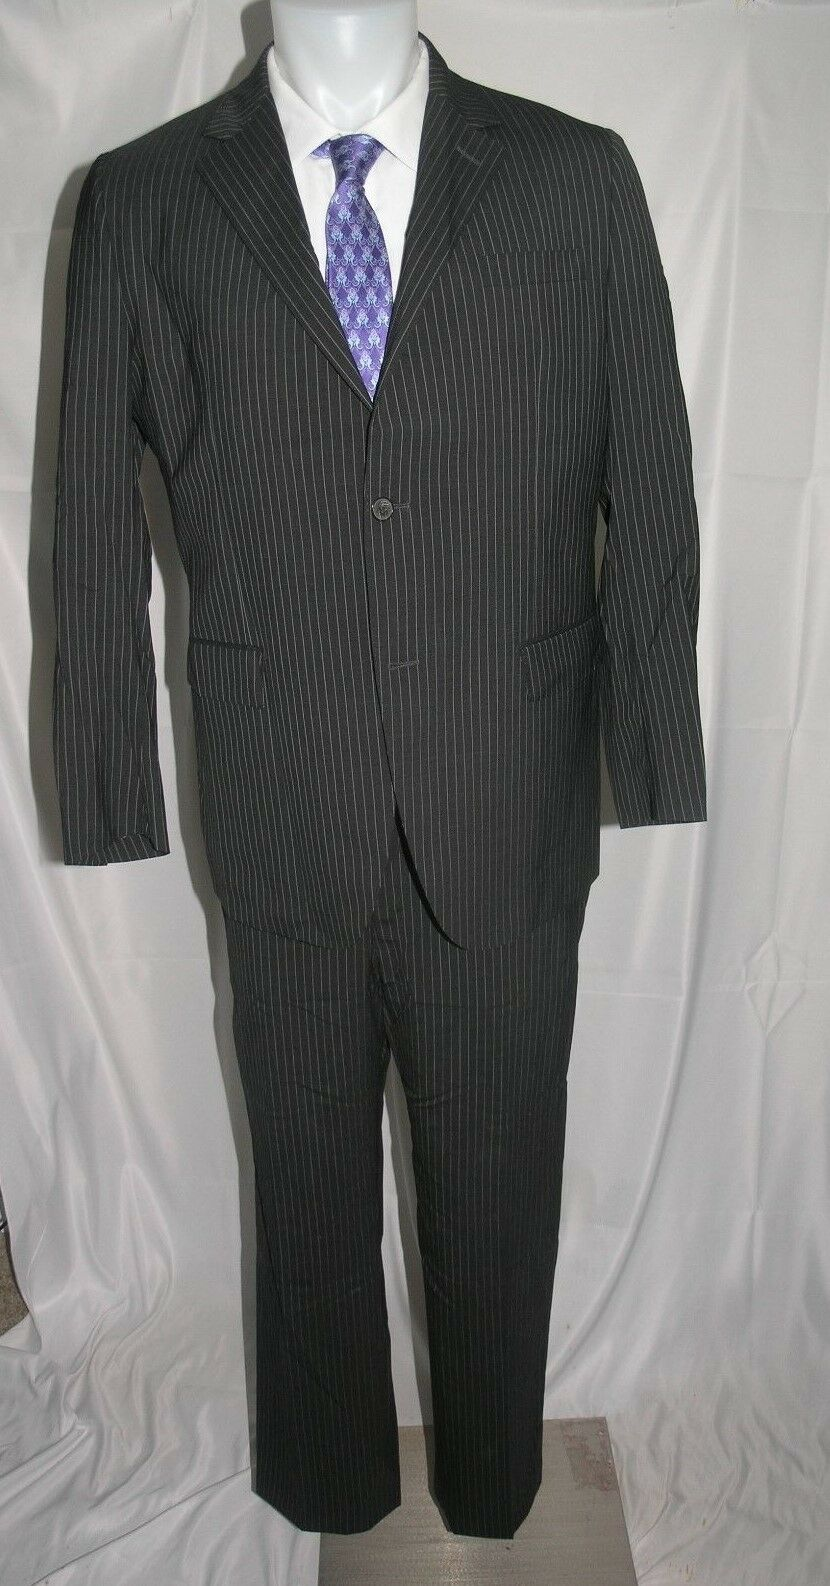 Valentino Two Button Flat Front Pinstriped Suit 42 R 35 x 29.5